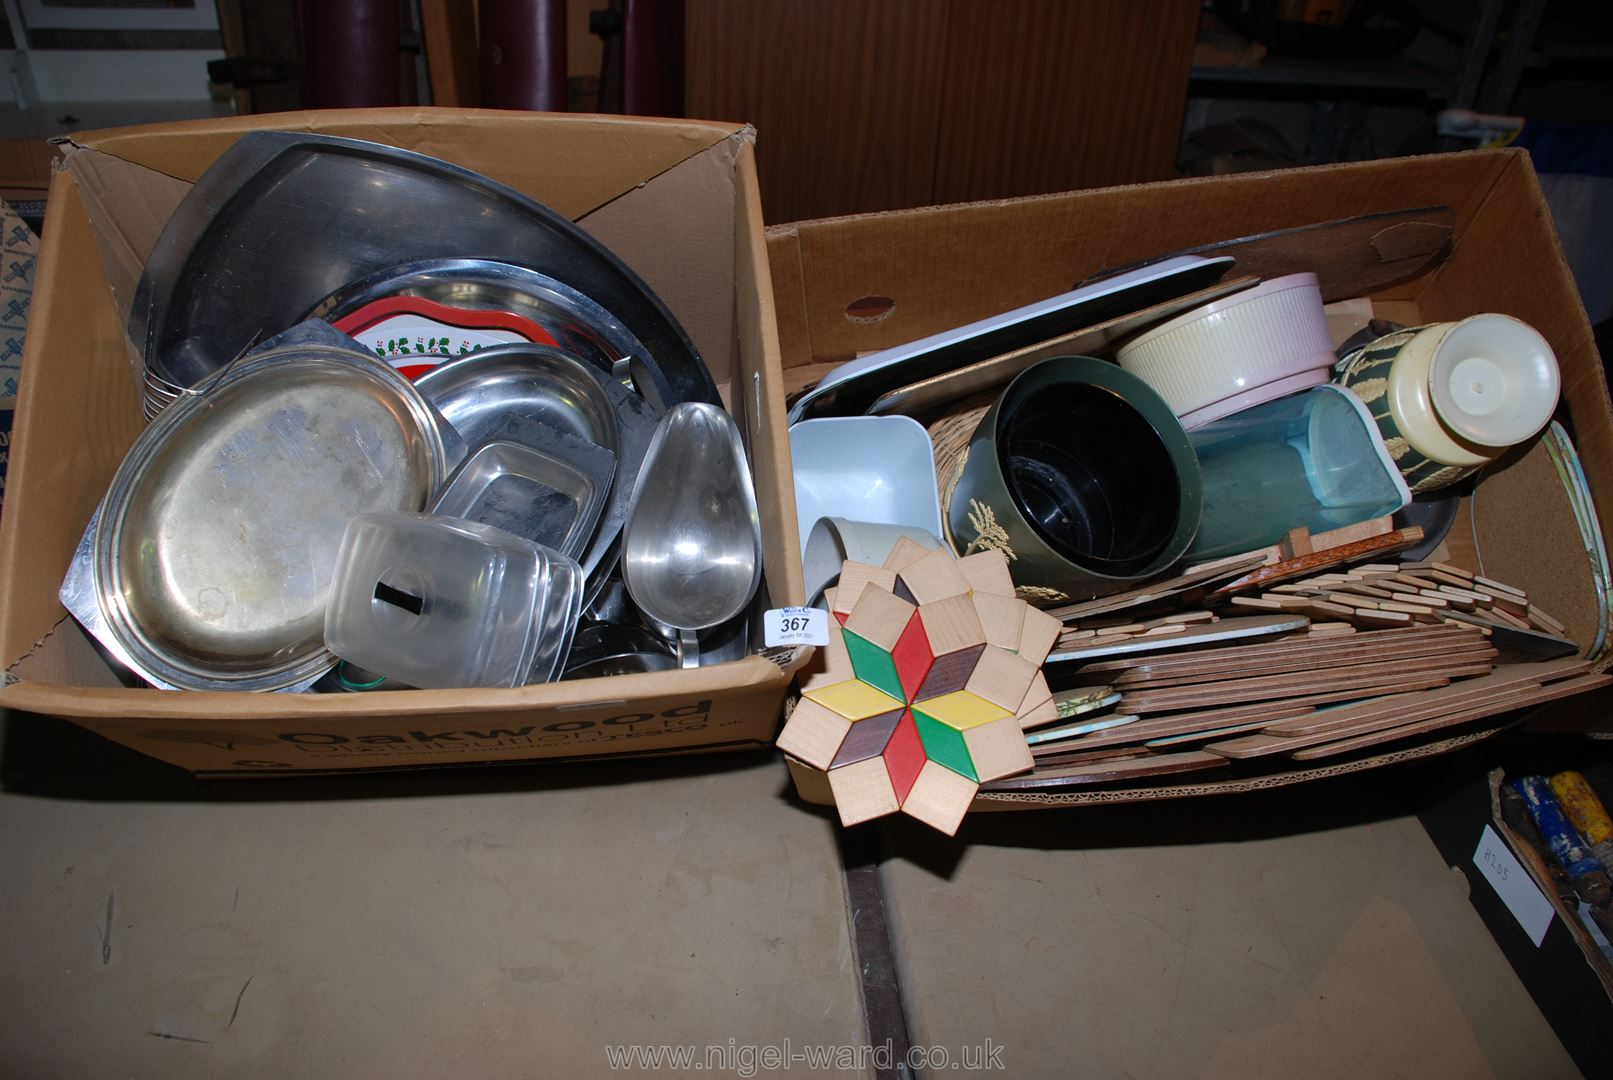 Miscellaneous stainless steel dishes and kitchenware plus various table mats, etc.